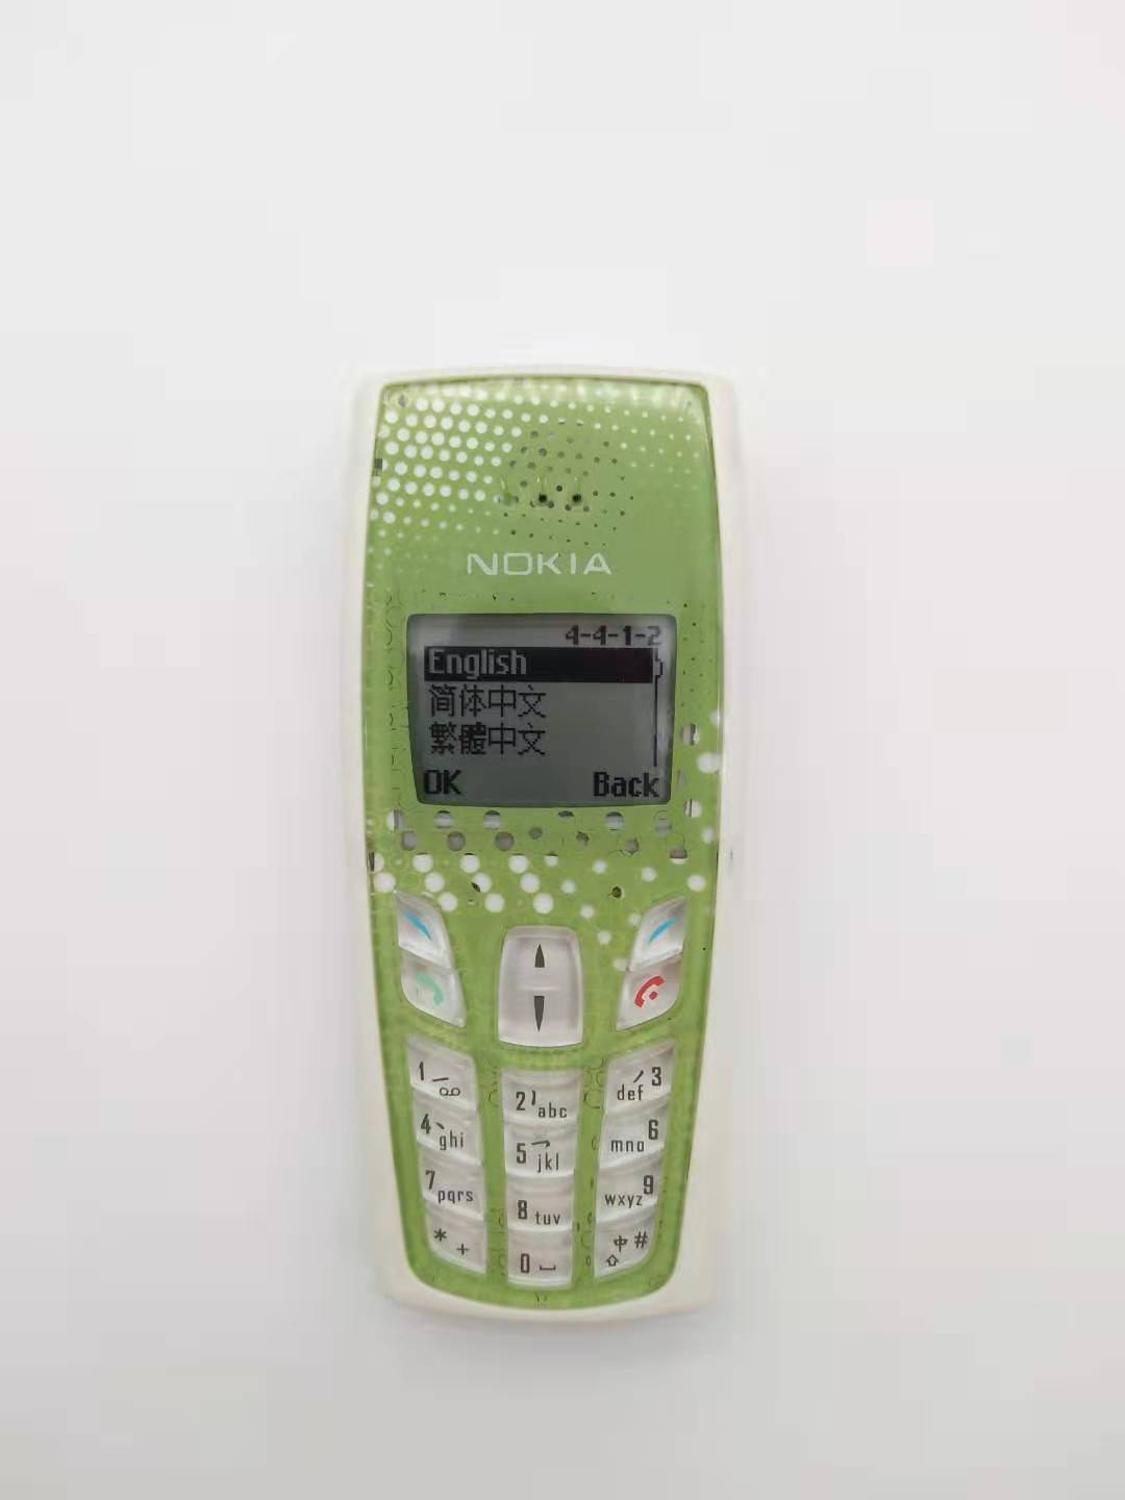 3610 100% Original Unlocked Nokia 3610 GSM One Sim Card Mobile Phone Free Shipping